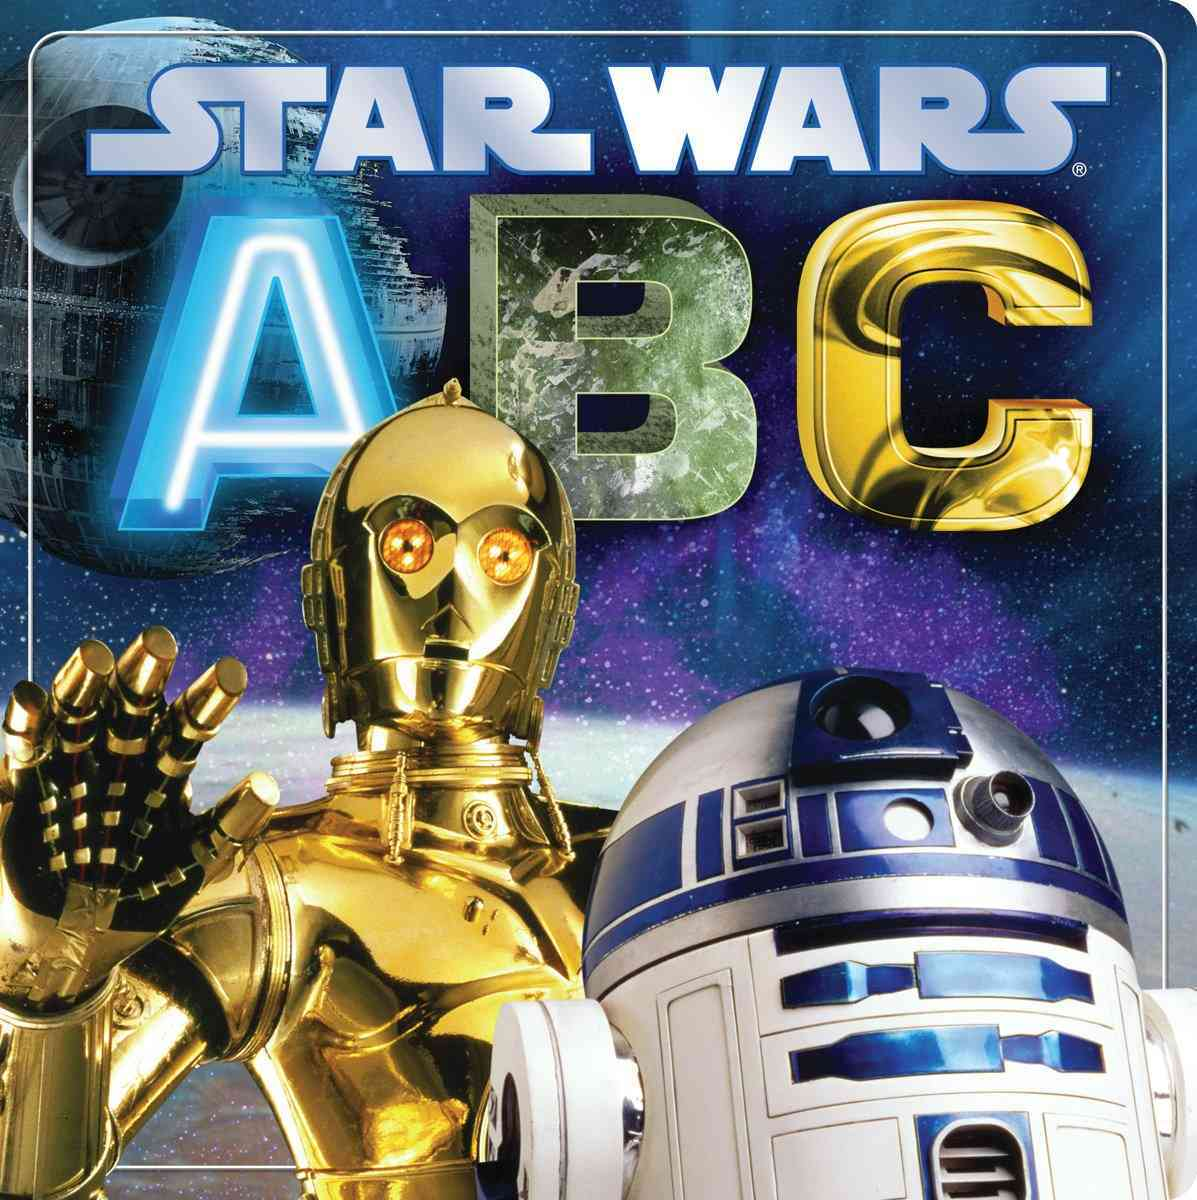 Star Wars ABC (Hardcover)